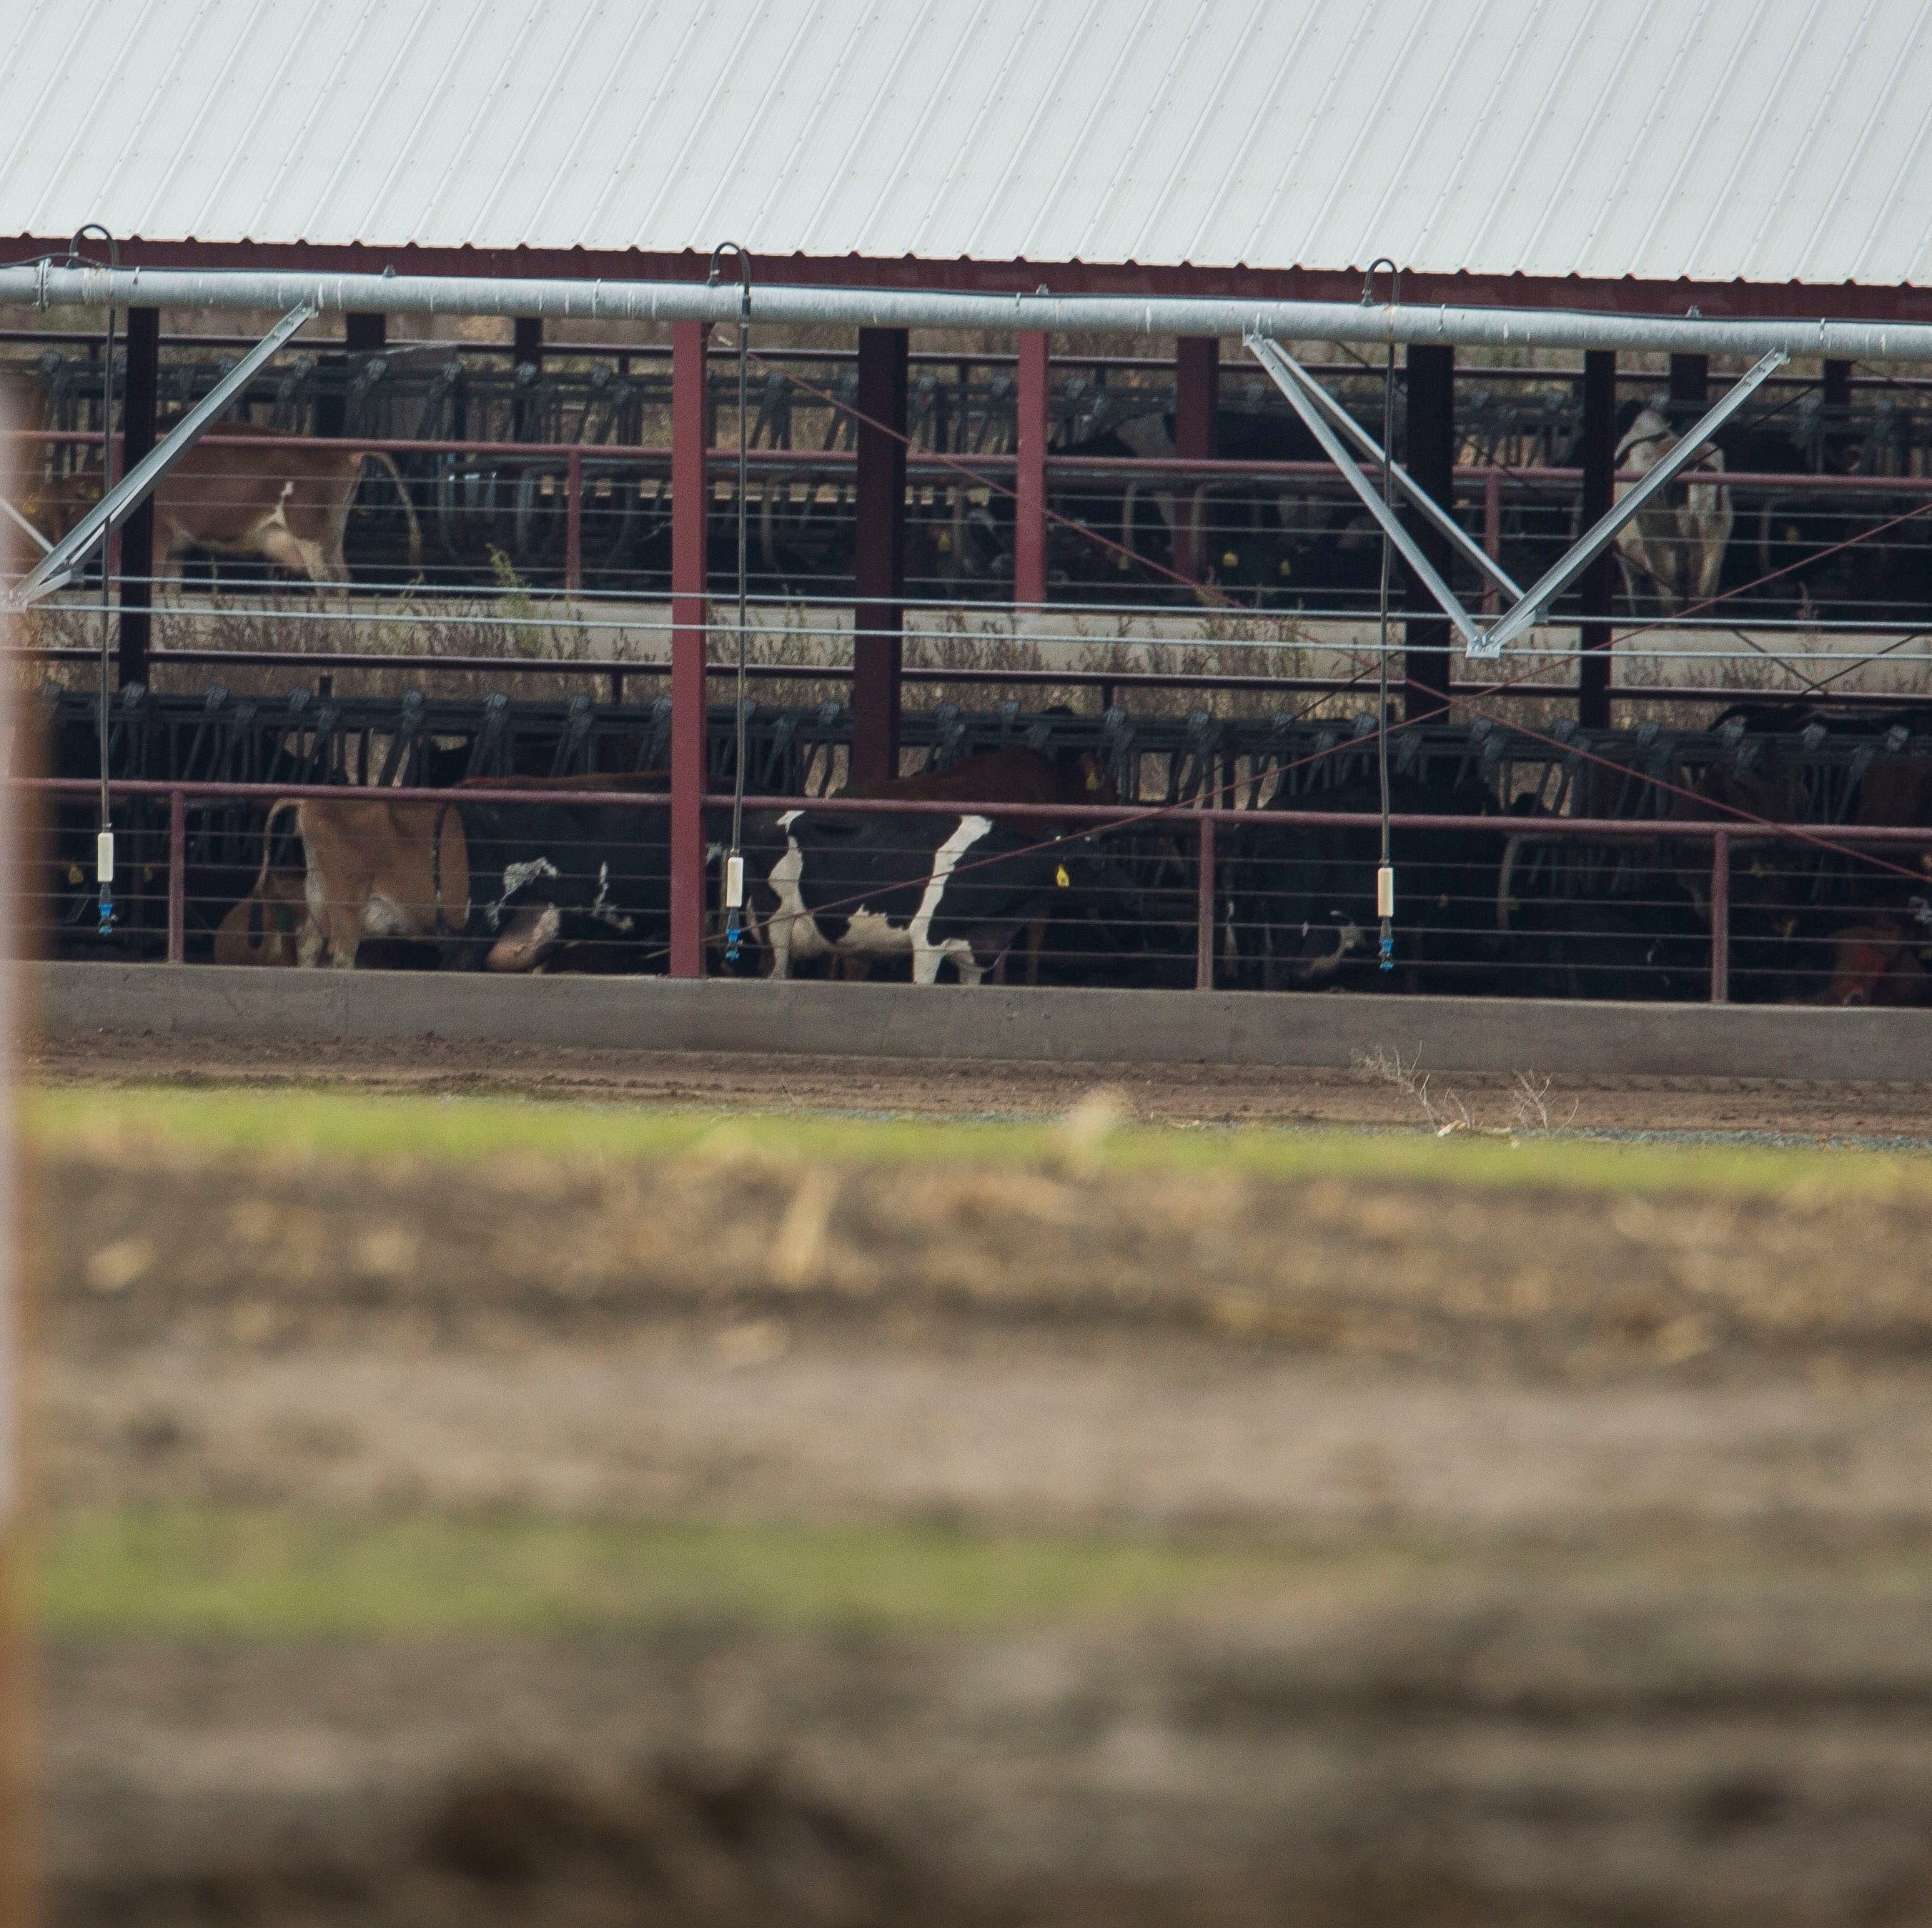 Oregon cites multiple dairies for manure discharge violations